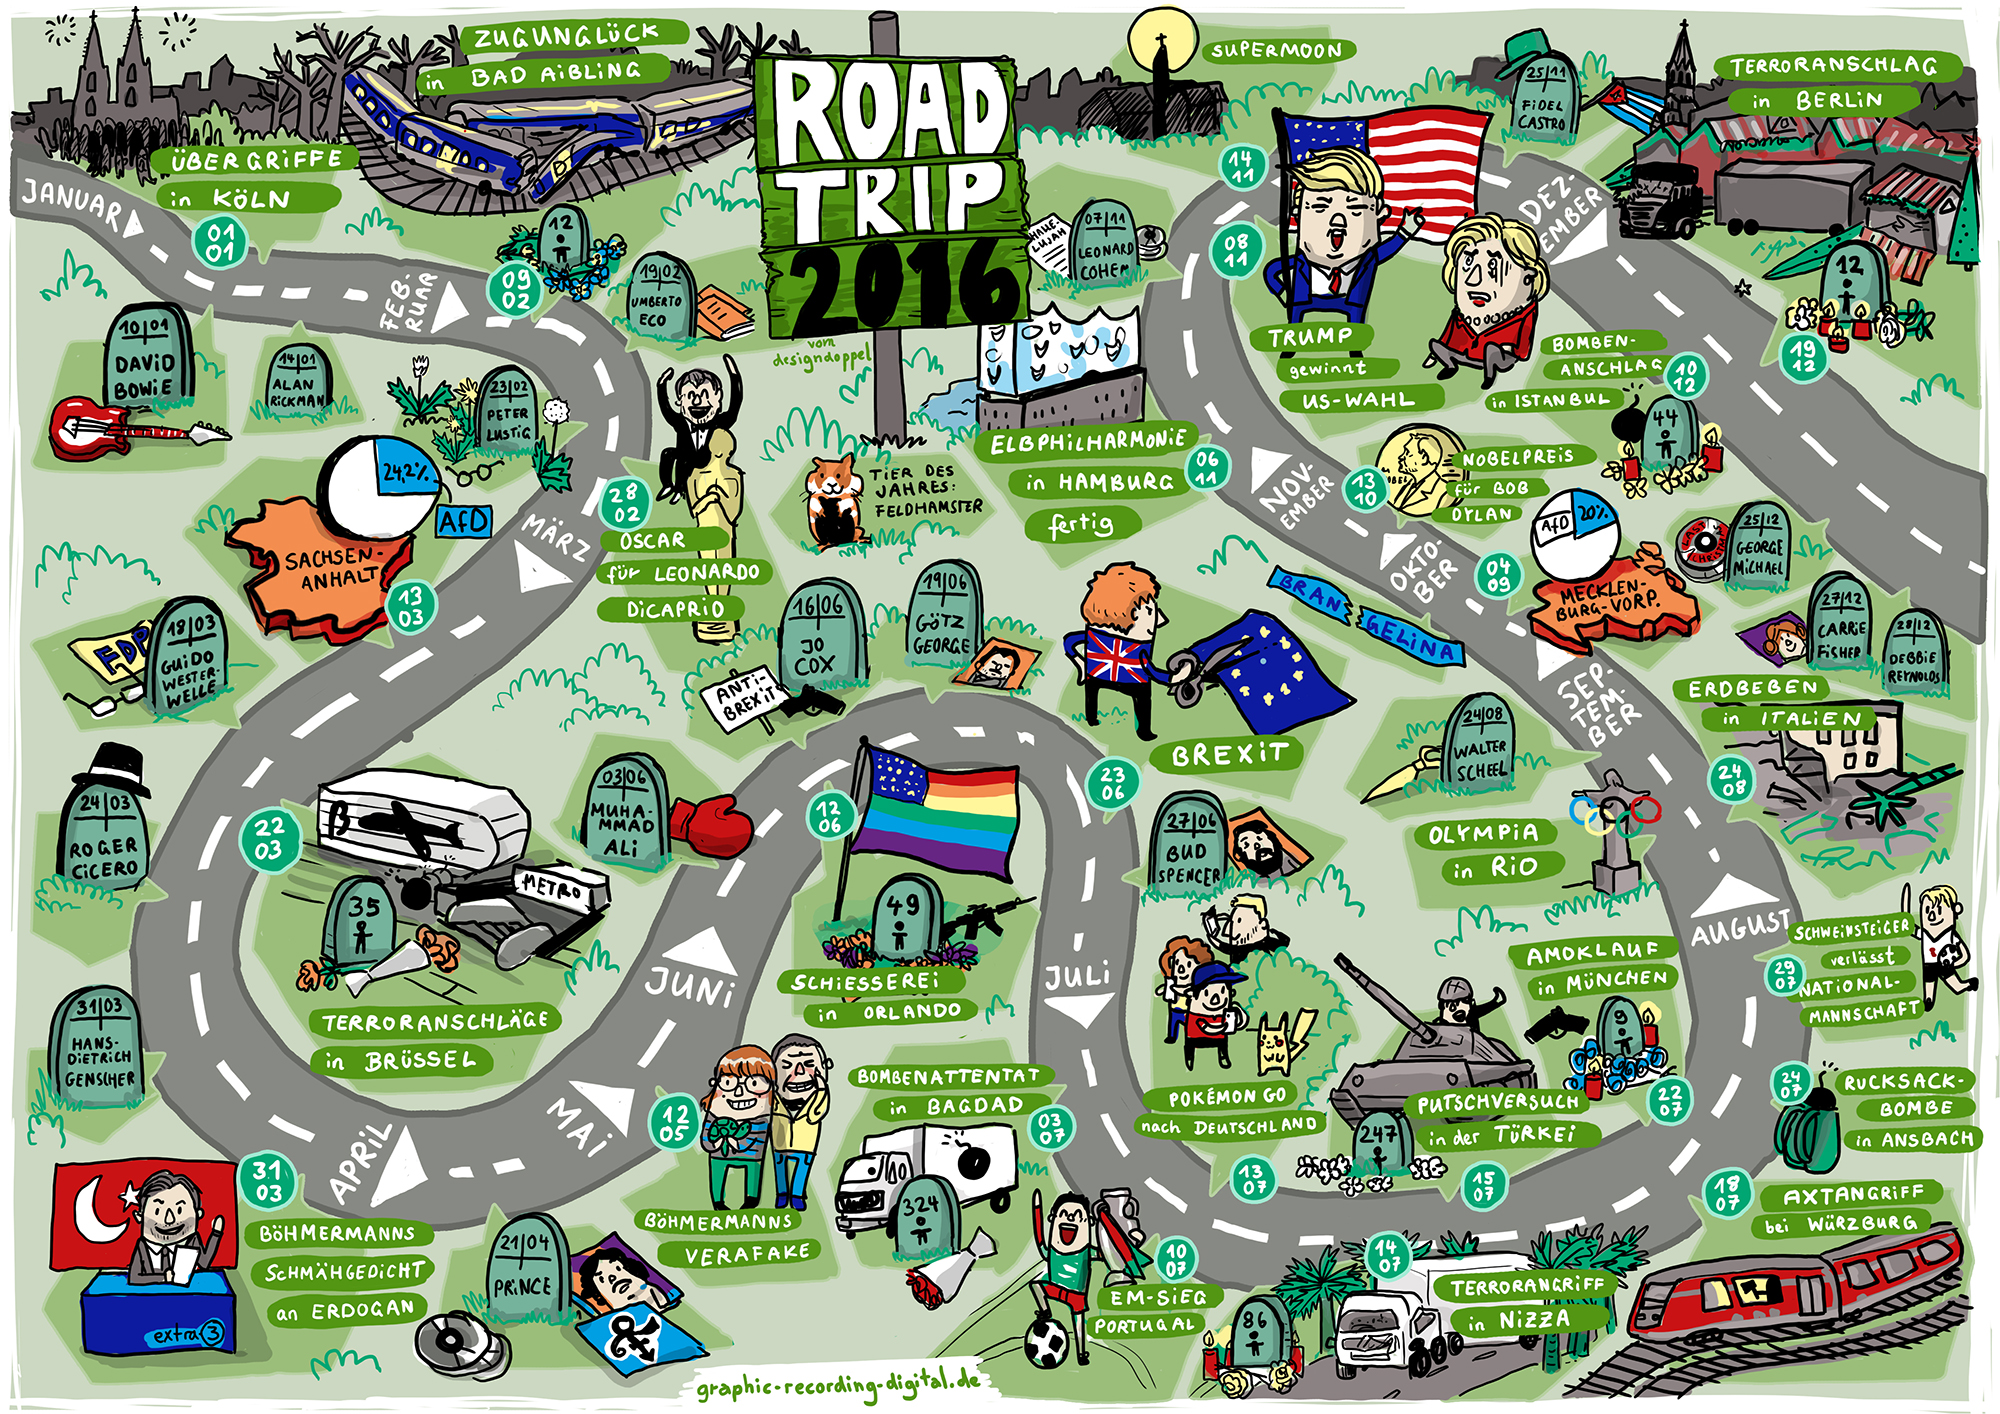 Illustrierter Jahresrückblick 2016 Roadtrip Illustration